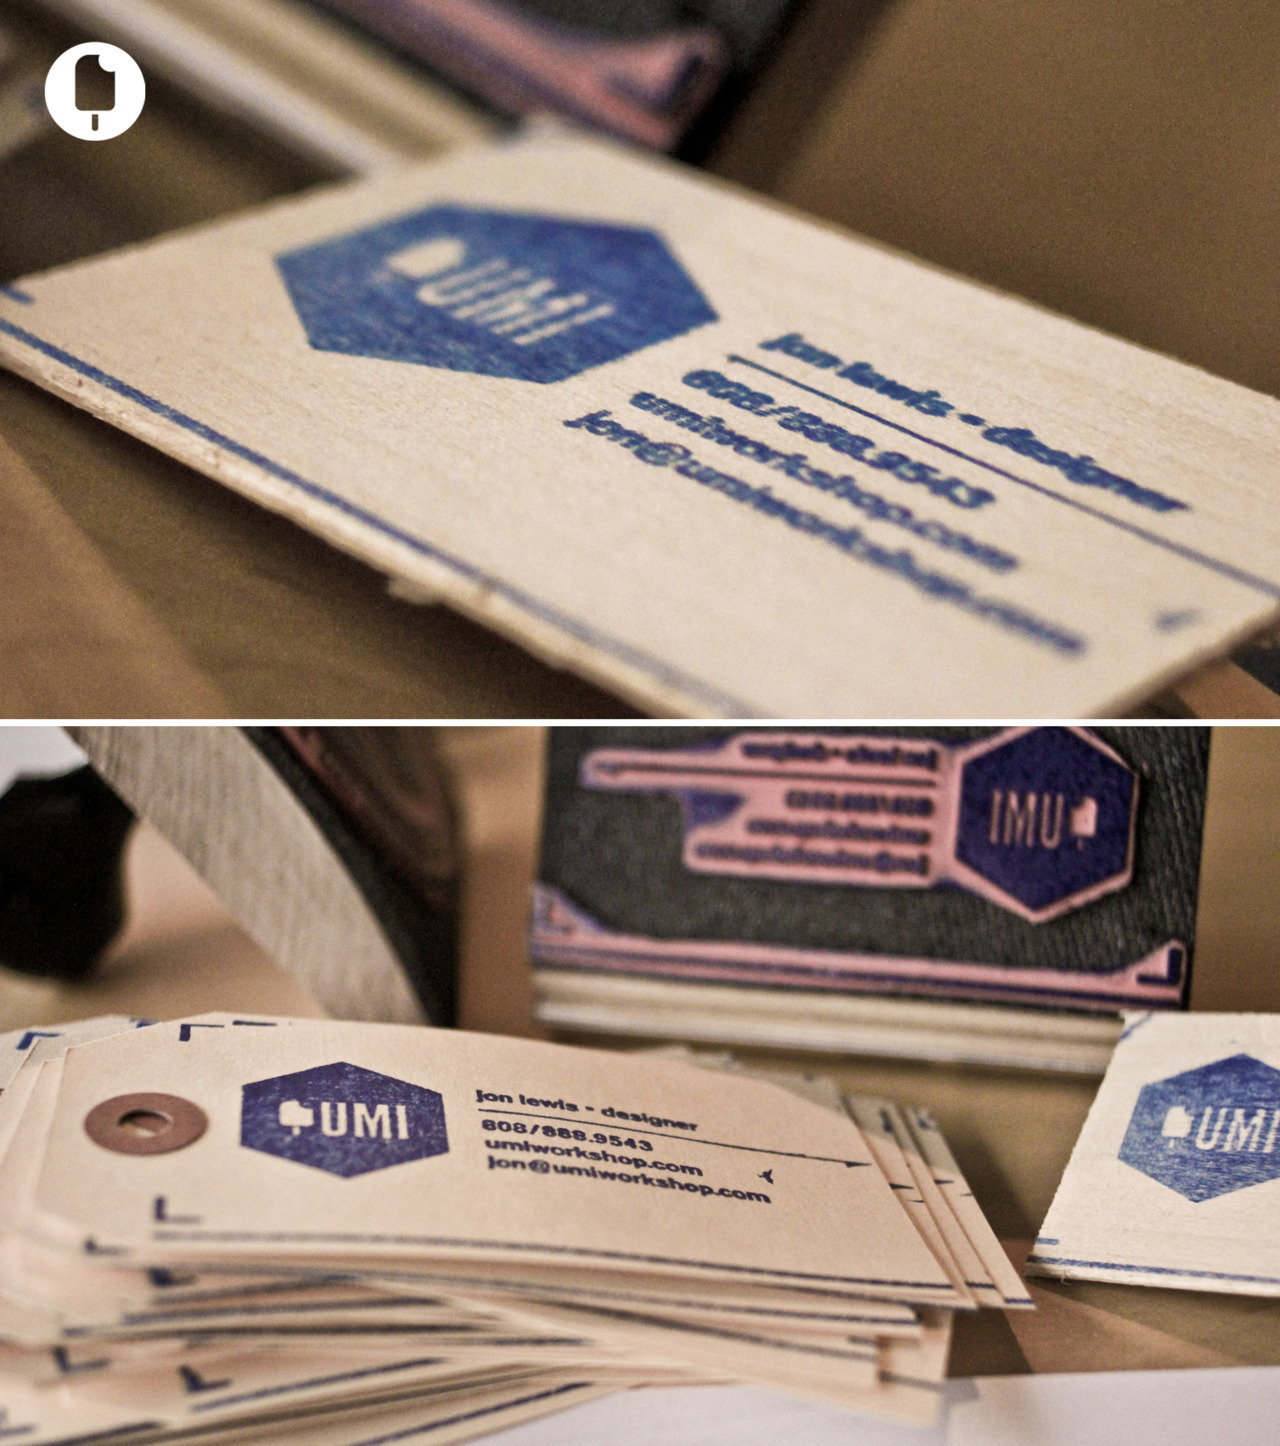 WOODEN BUSINESS CARDS Custom stamps pressed onto balsa wood. Designed by UMI Workshop